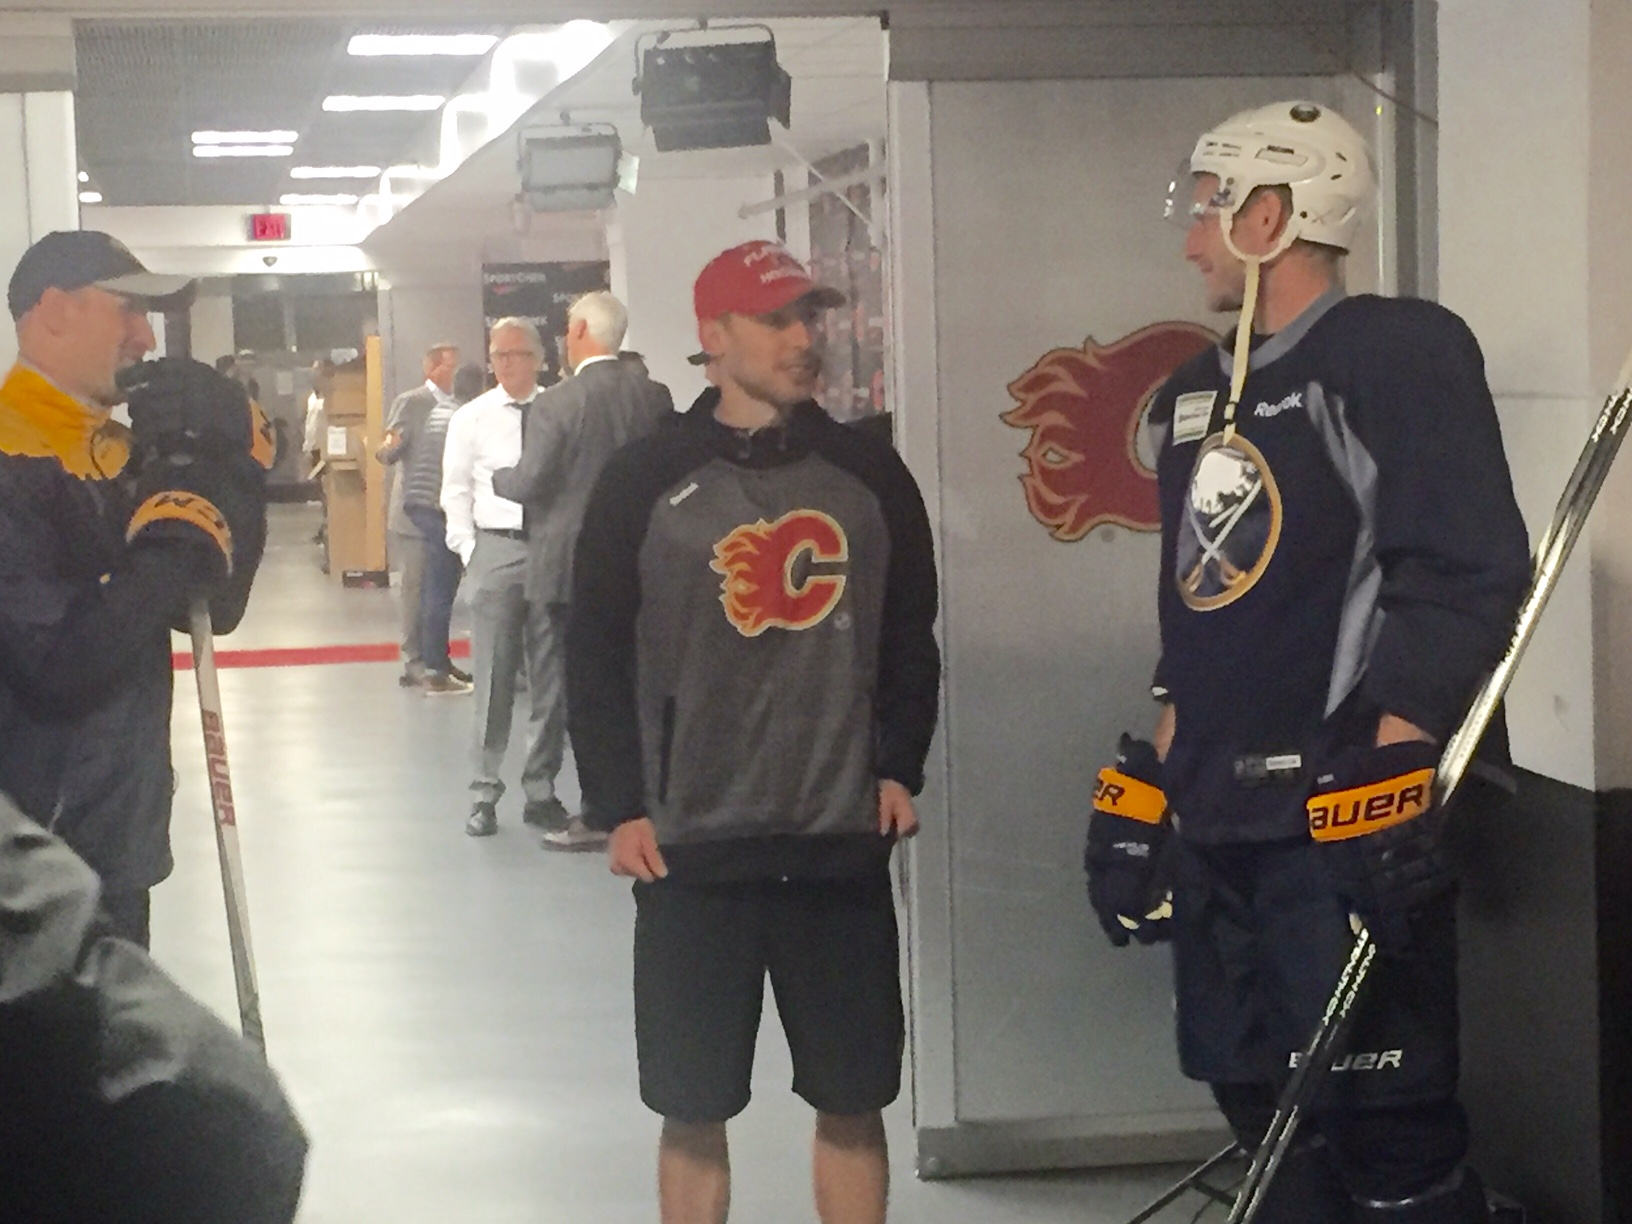 Former Sabres goalie Chad Johnson chats with Cody Franson and Buffalo goaltending coach Andrew Allen Tuesday in the Saddledome (Mike Harrington/Buffalo News).